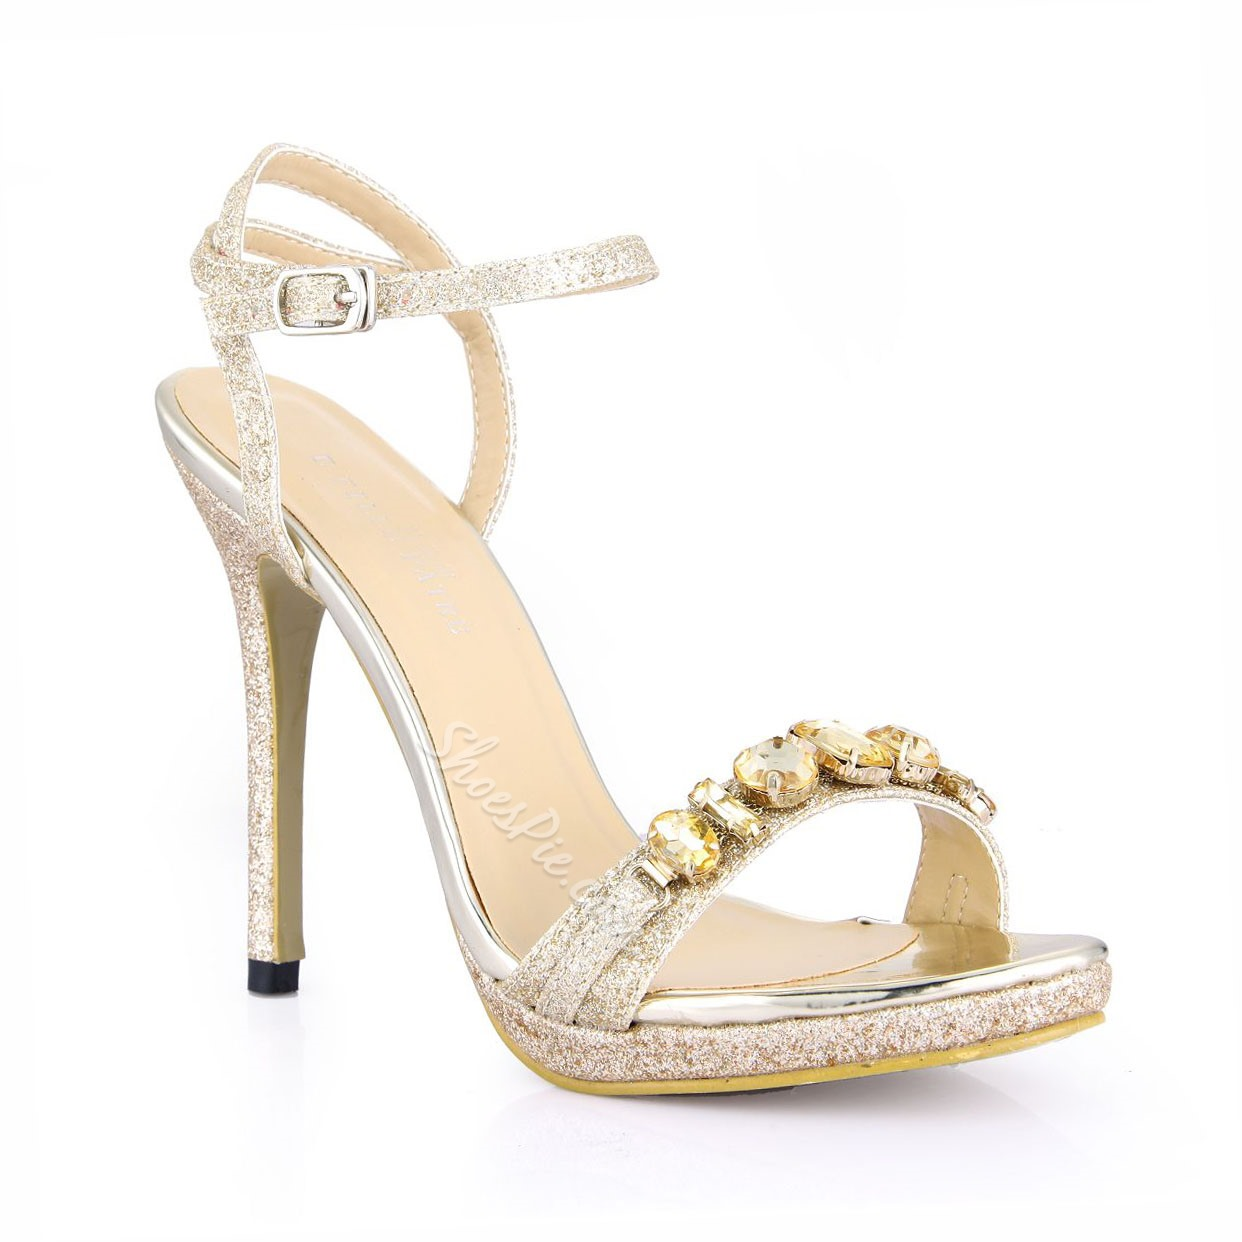 Shoespie Sequined Rhinestone Ankle Wrap Dress Sandals